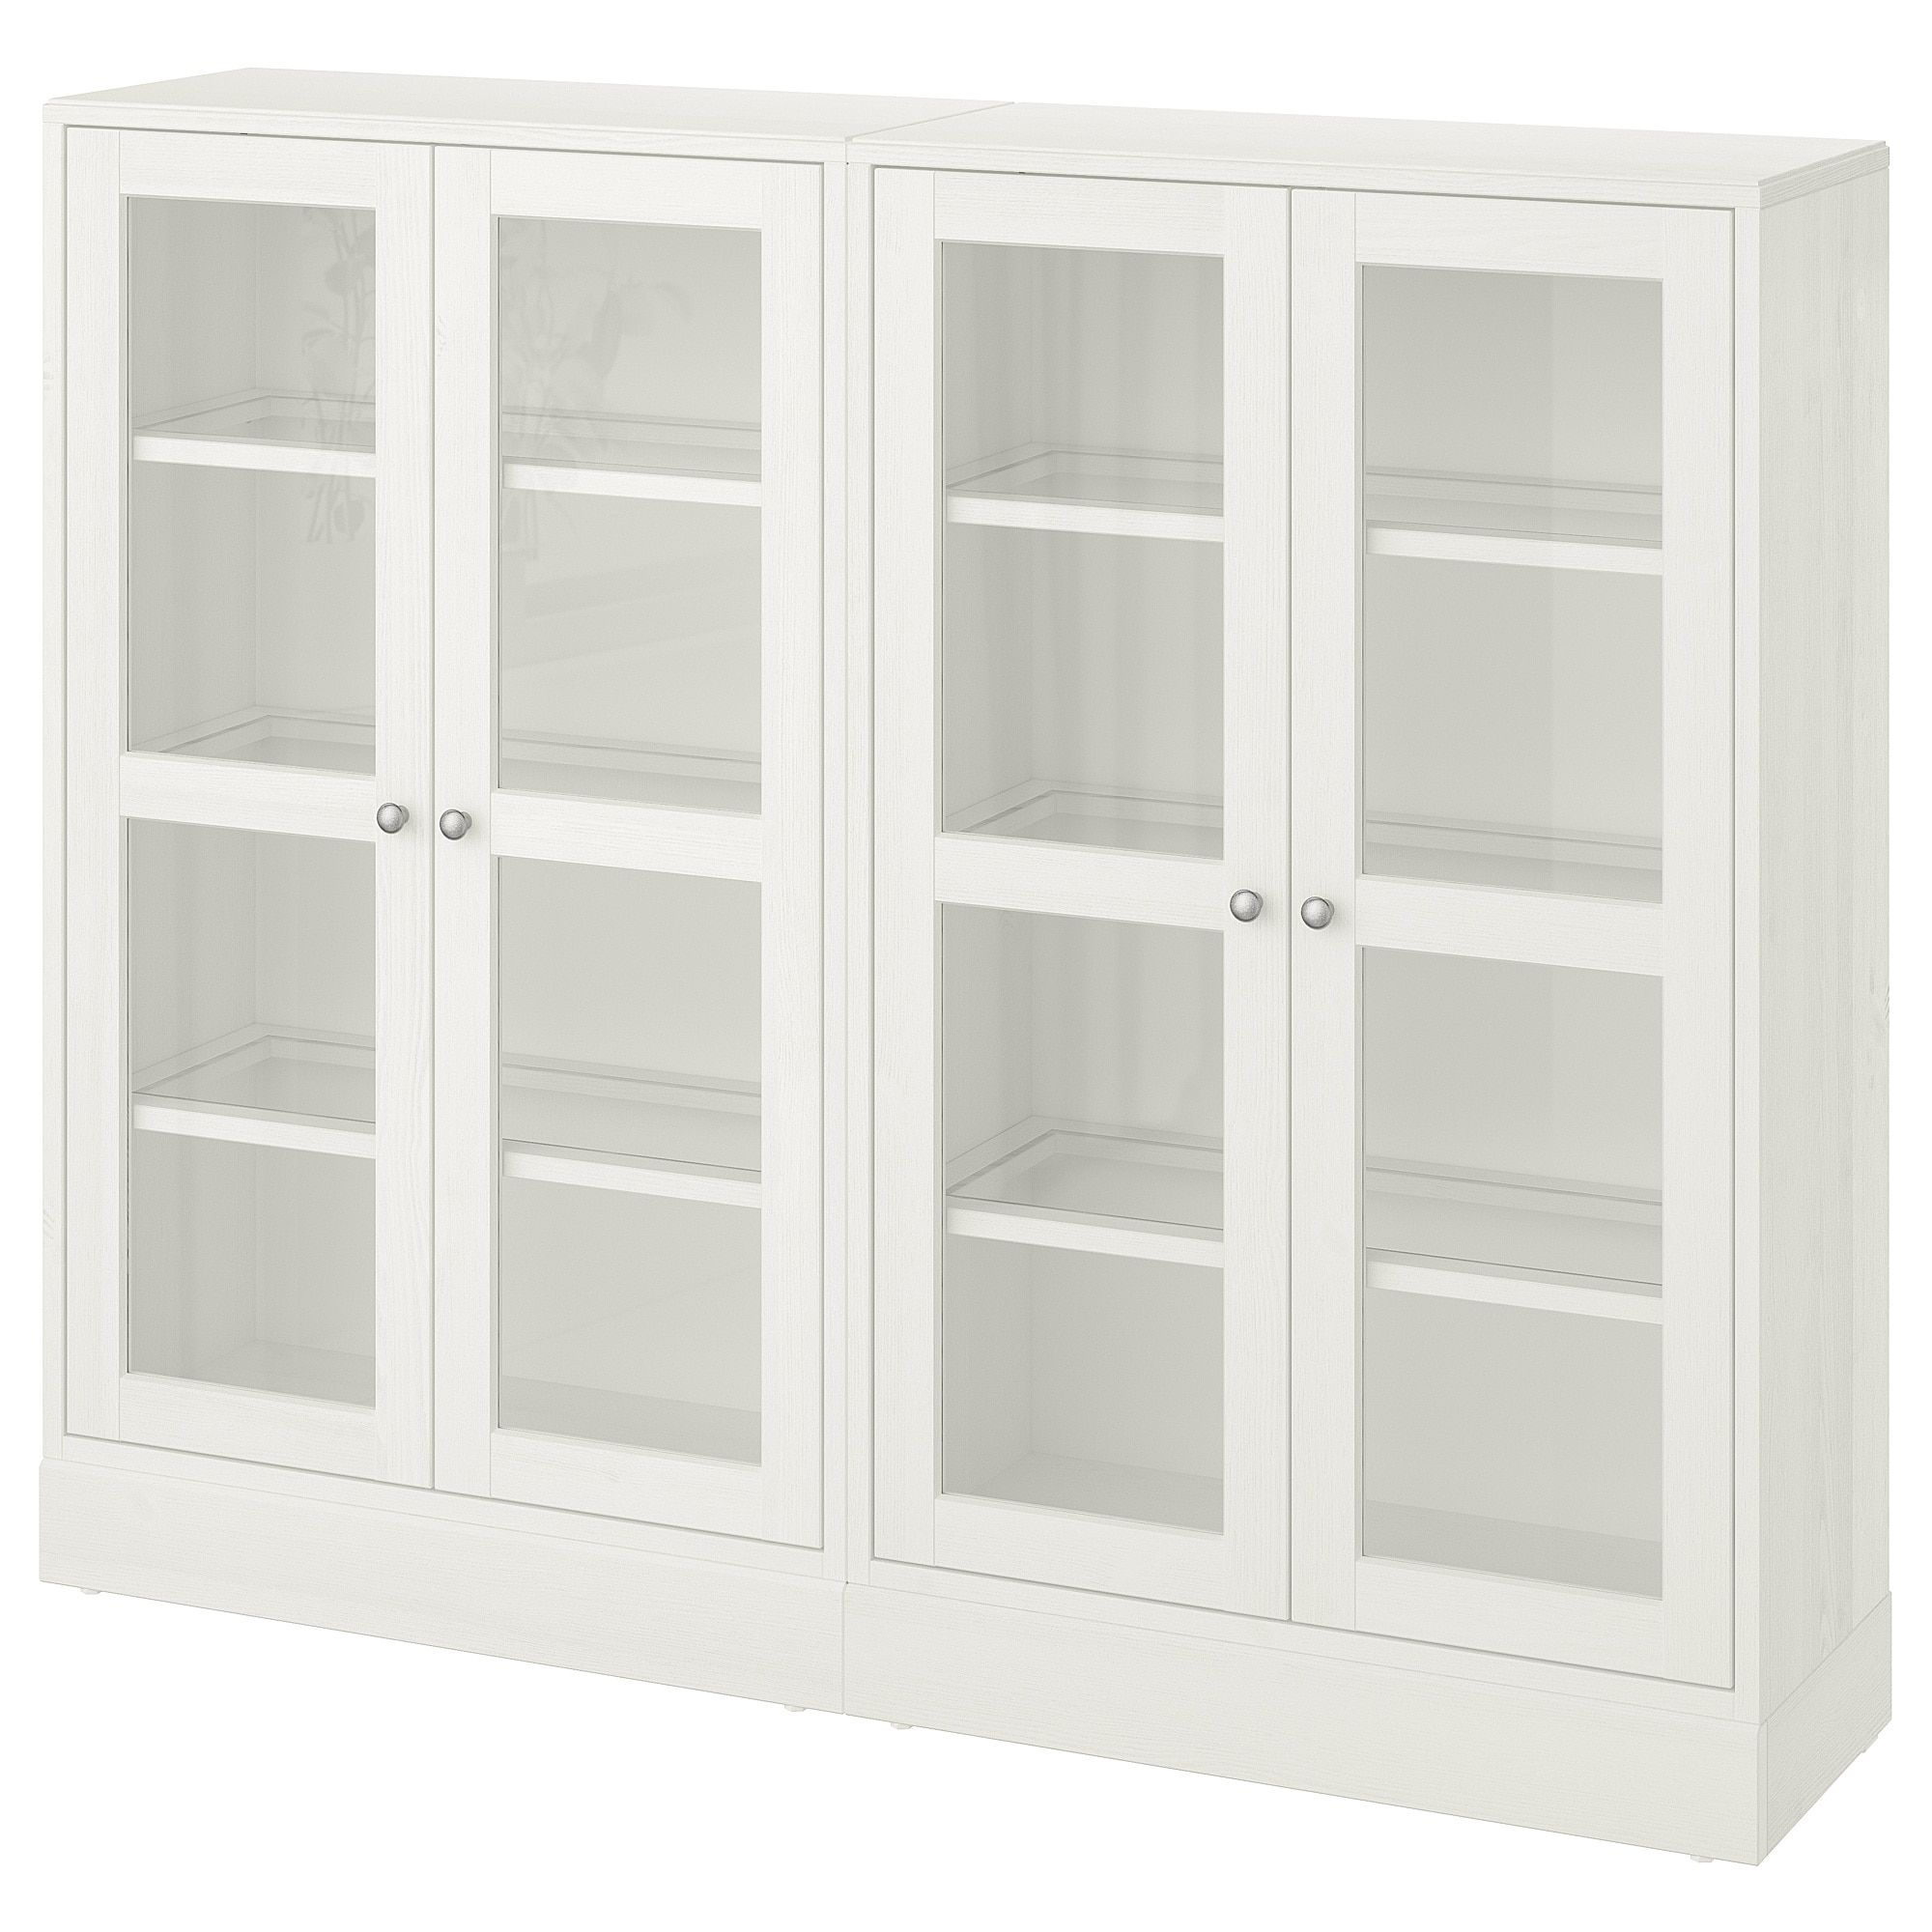 Ikea Havsta White Storage Combination W Glass Doors In 2020 Glass Cabinet Doors Glass Door Ikea